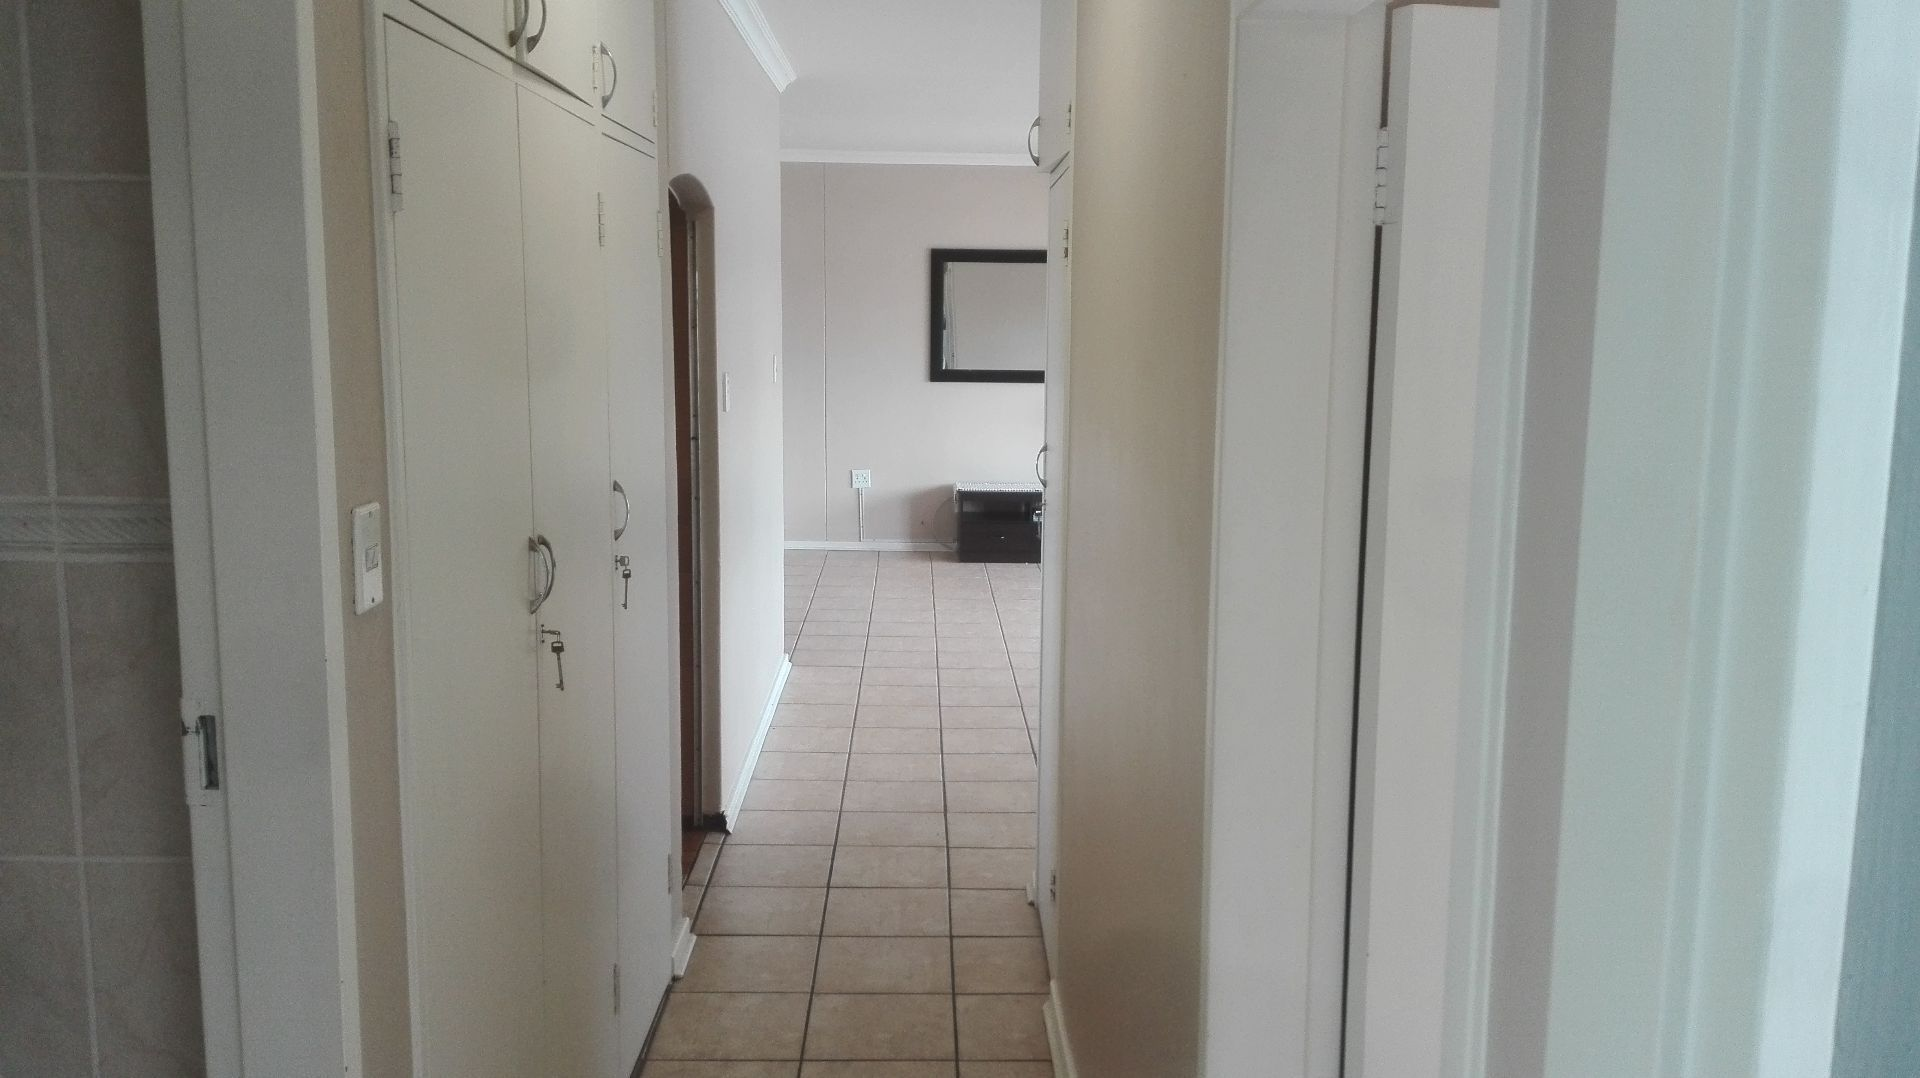 Apartment in Central - Hallway